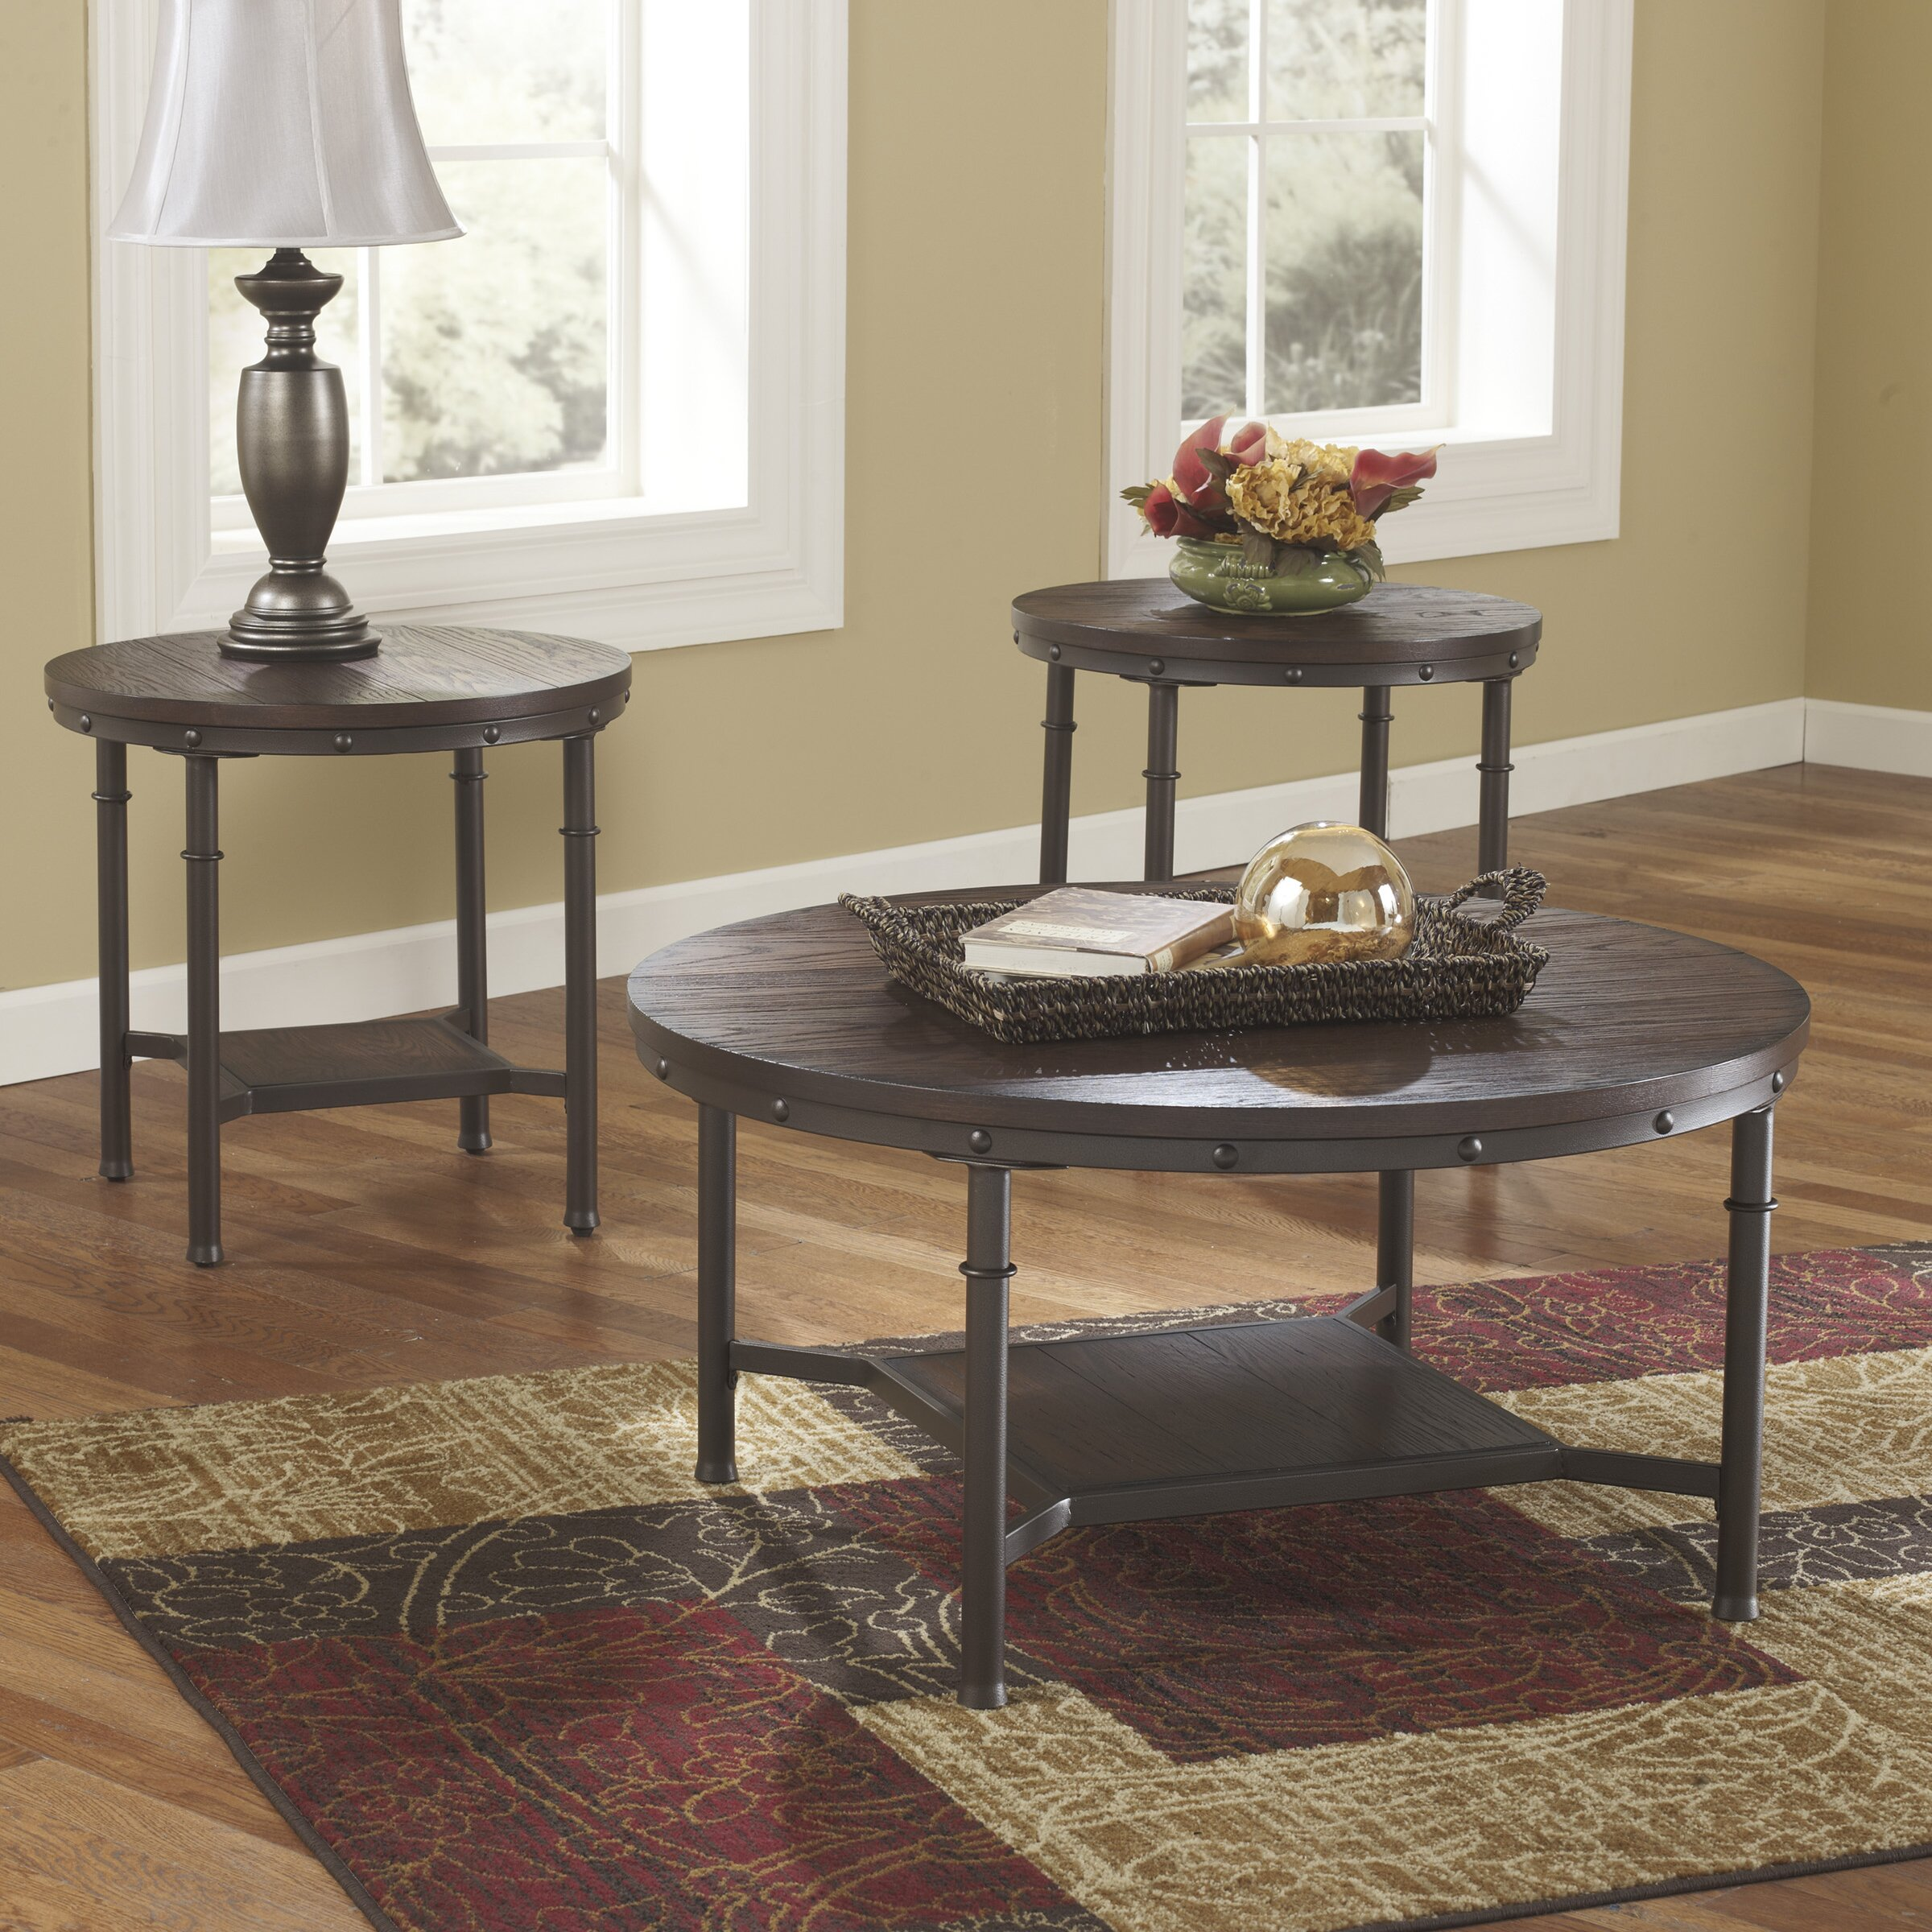 Mor Furniture Living Room Sets Coffee Table Sets Youll Love Wayfair